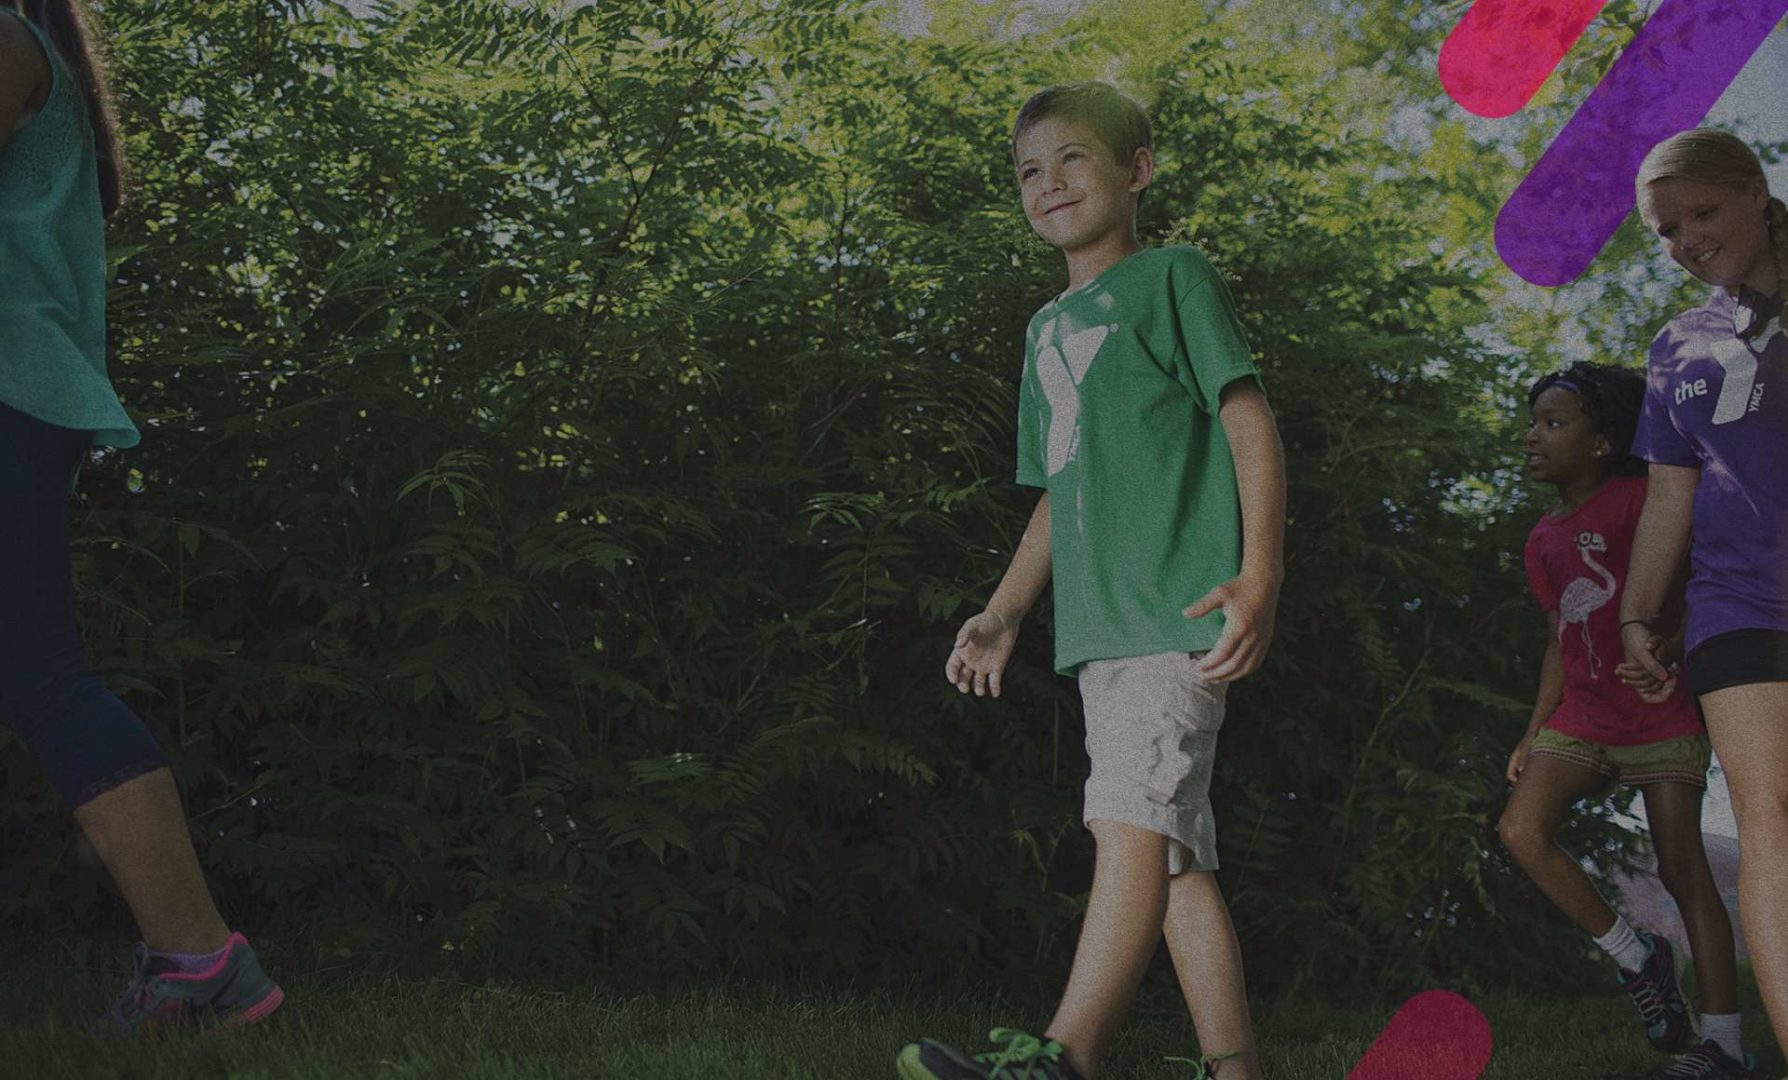 kids in YMCA t-shirts at an outdoor program